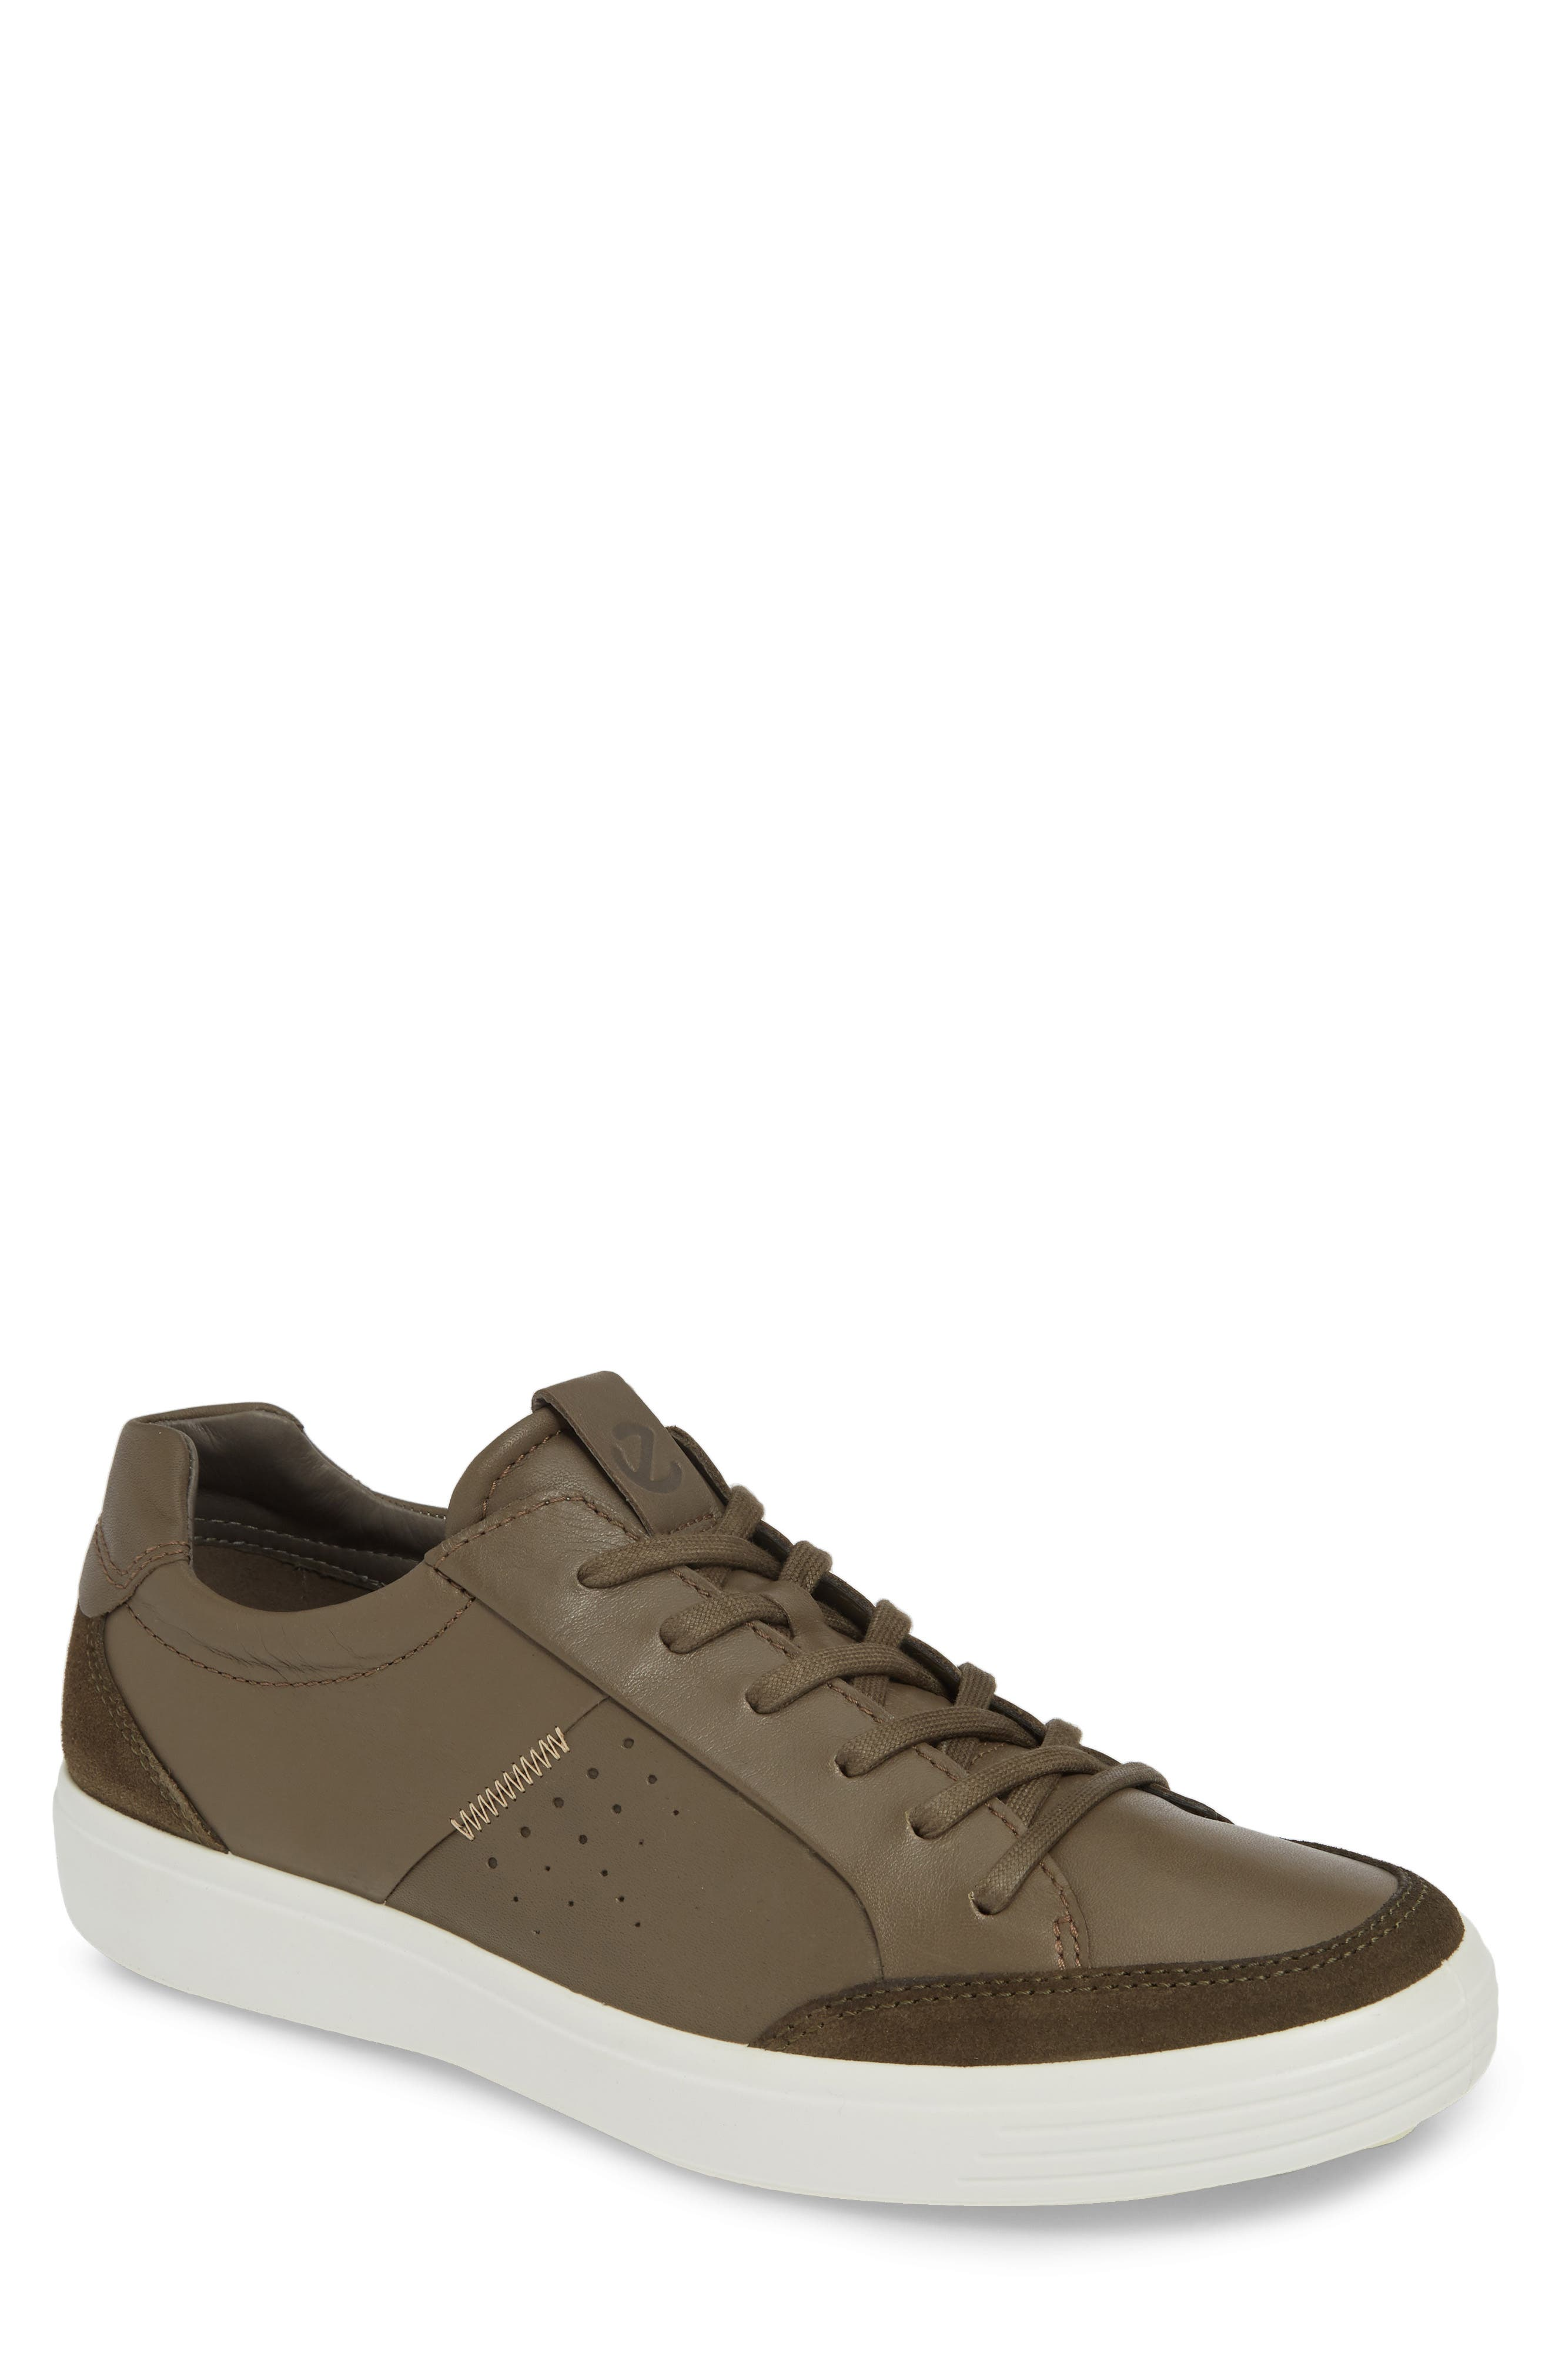 Ecco Soft 7 Relaxed Sneaker, Brown